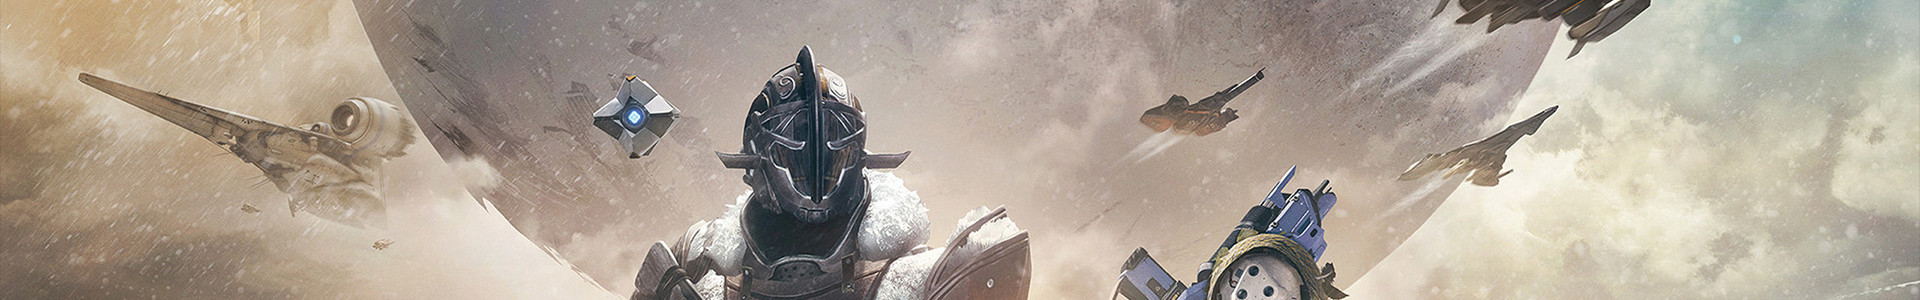 Banner media of Destiny 2 video game.